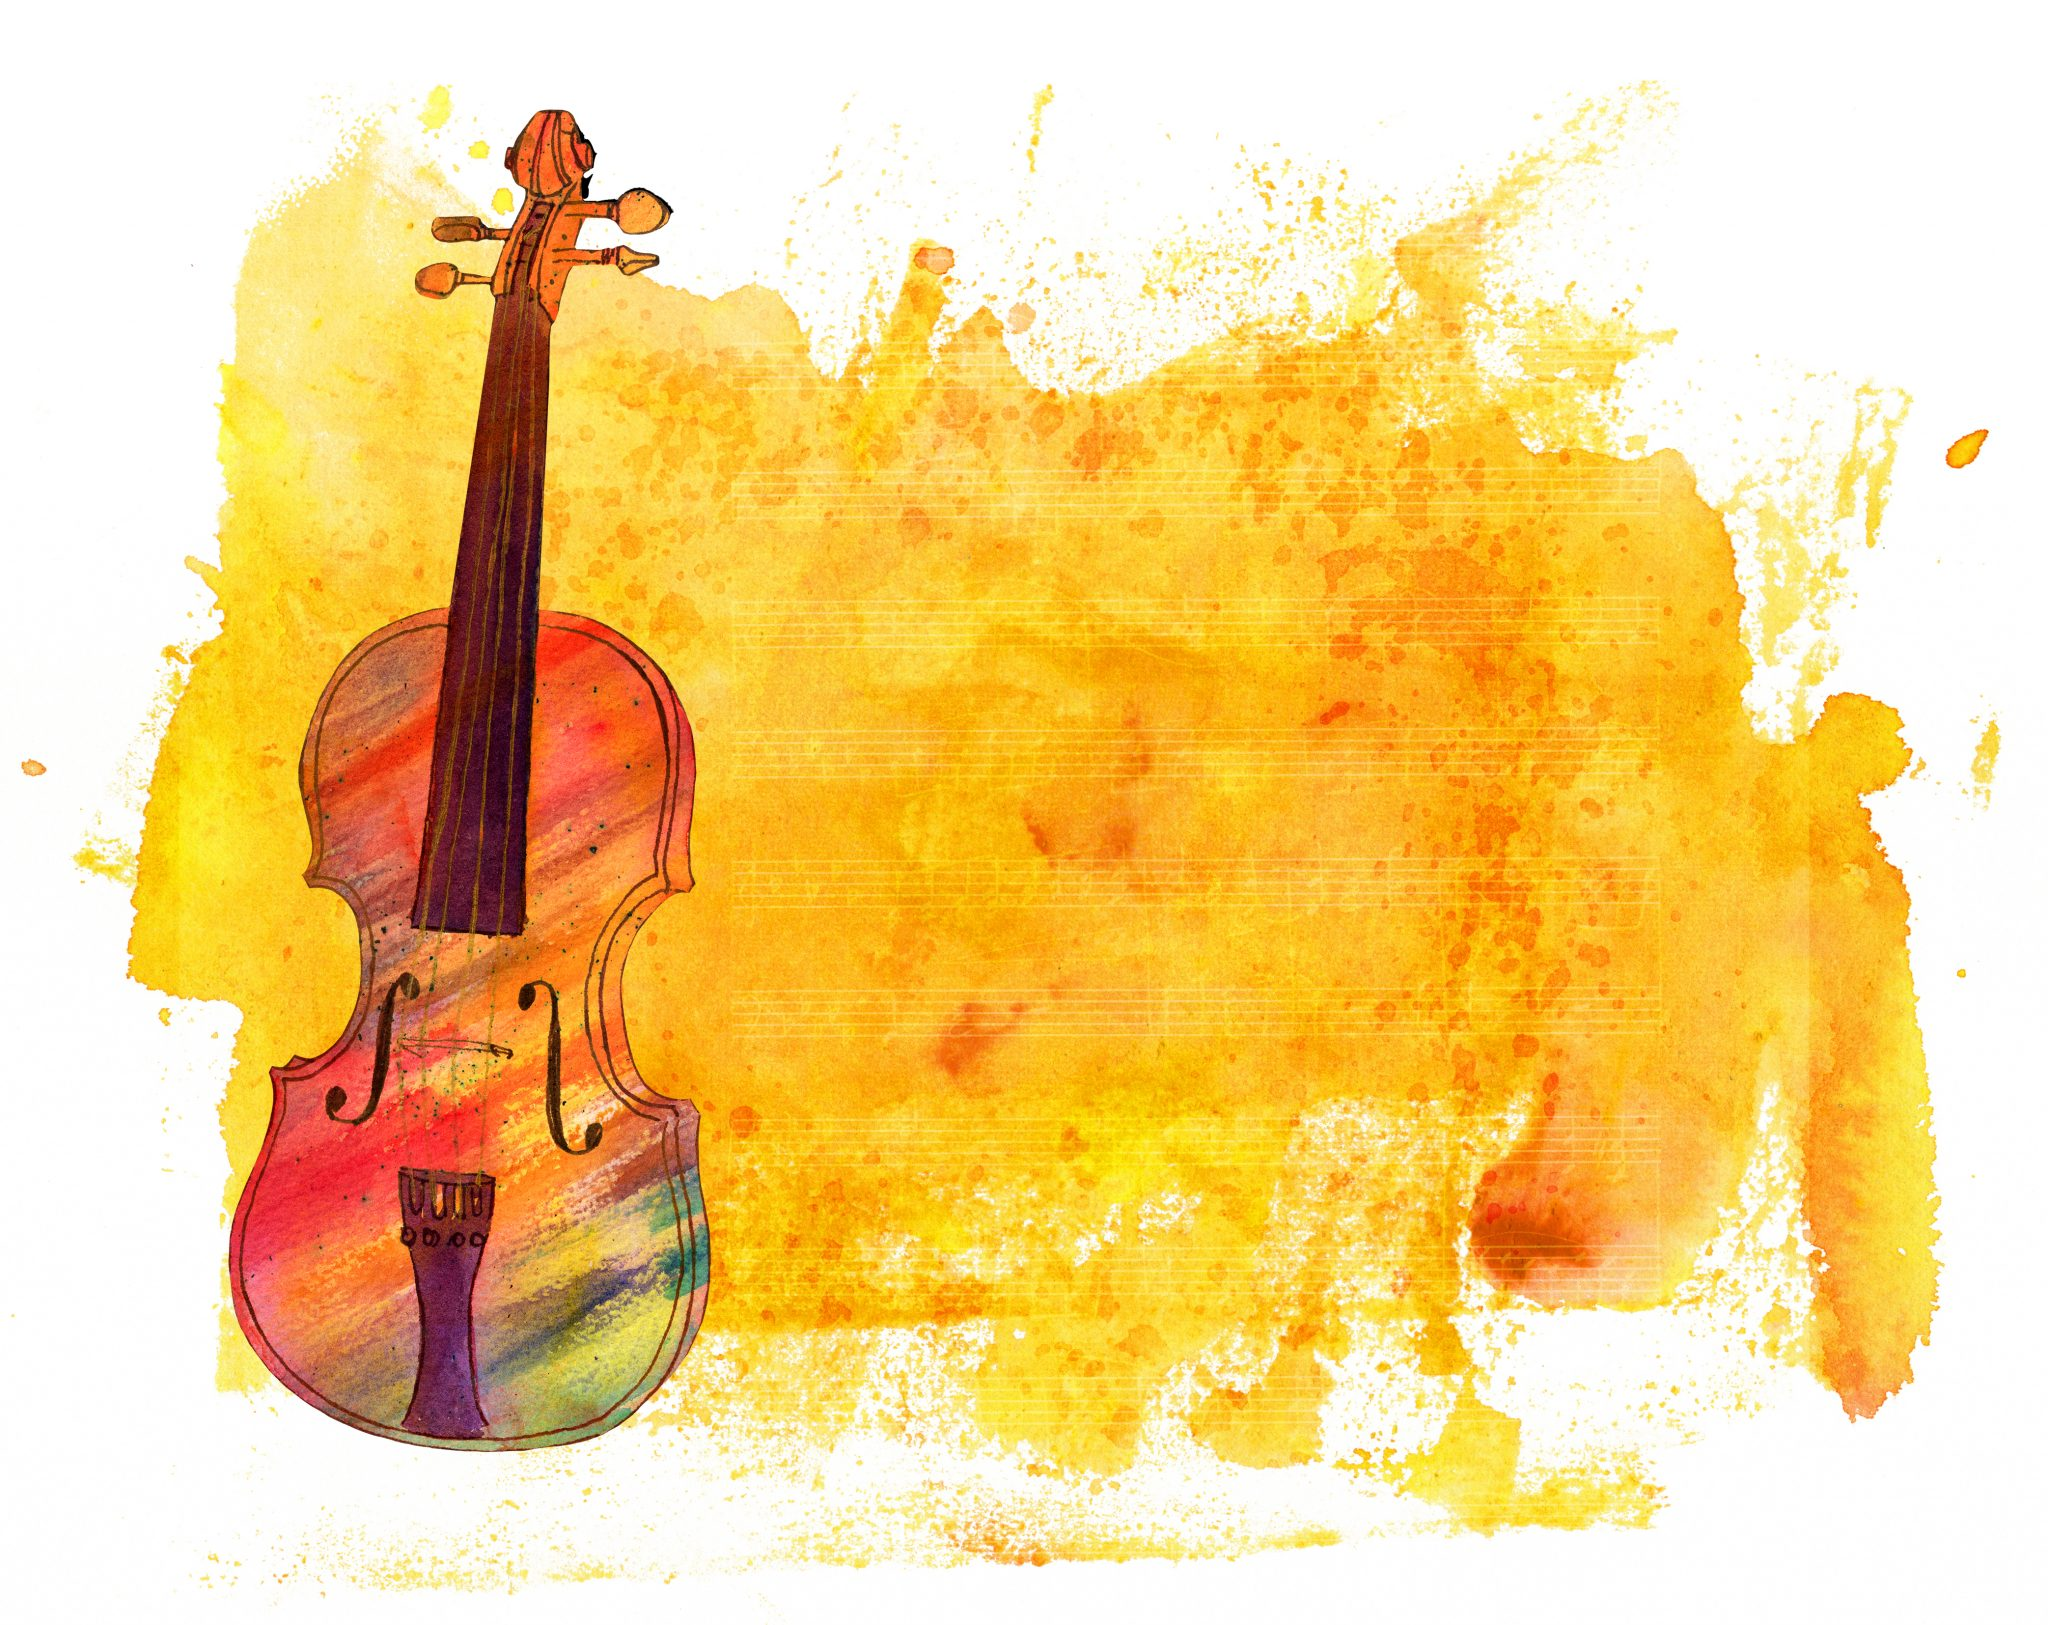 A watercolor drawing of a violin on an abstract acrylic golden background texture with a rough edge on white background, with faded sheet music and a place for text